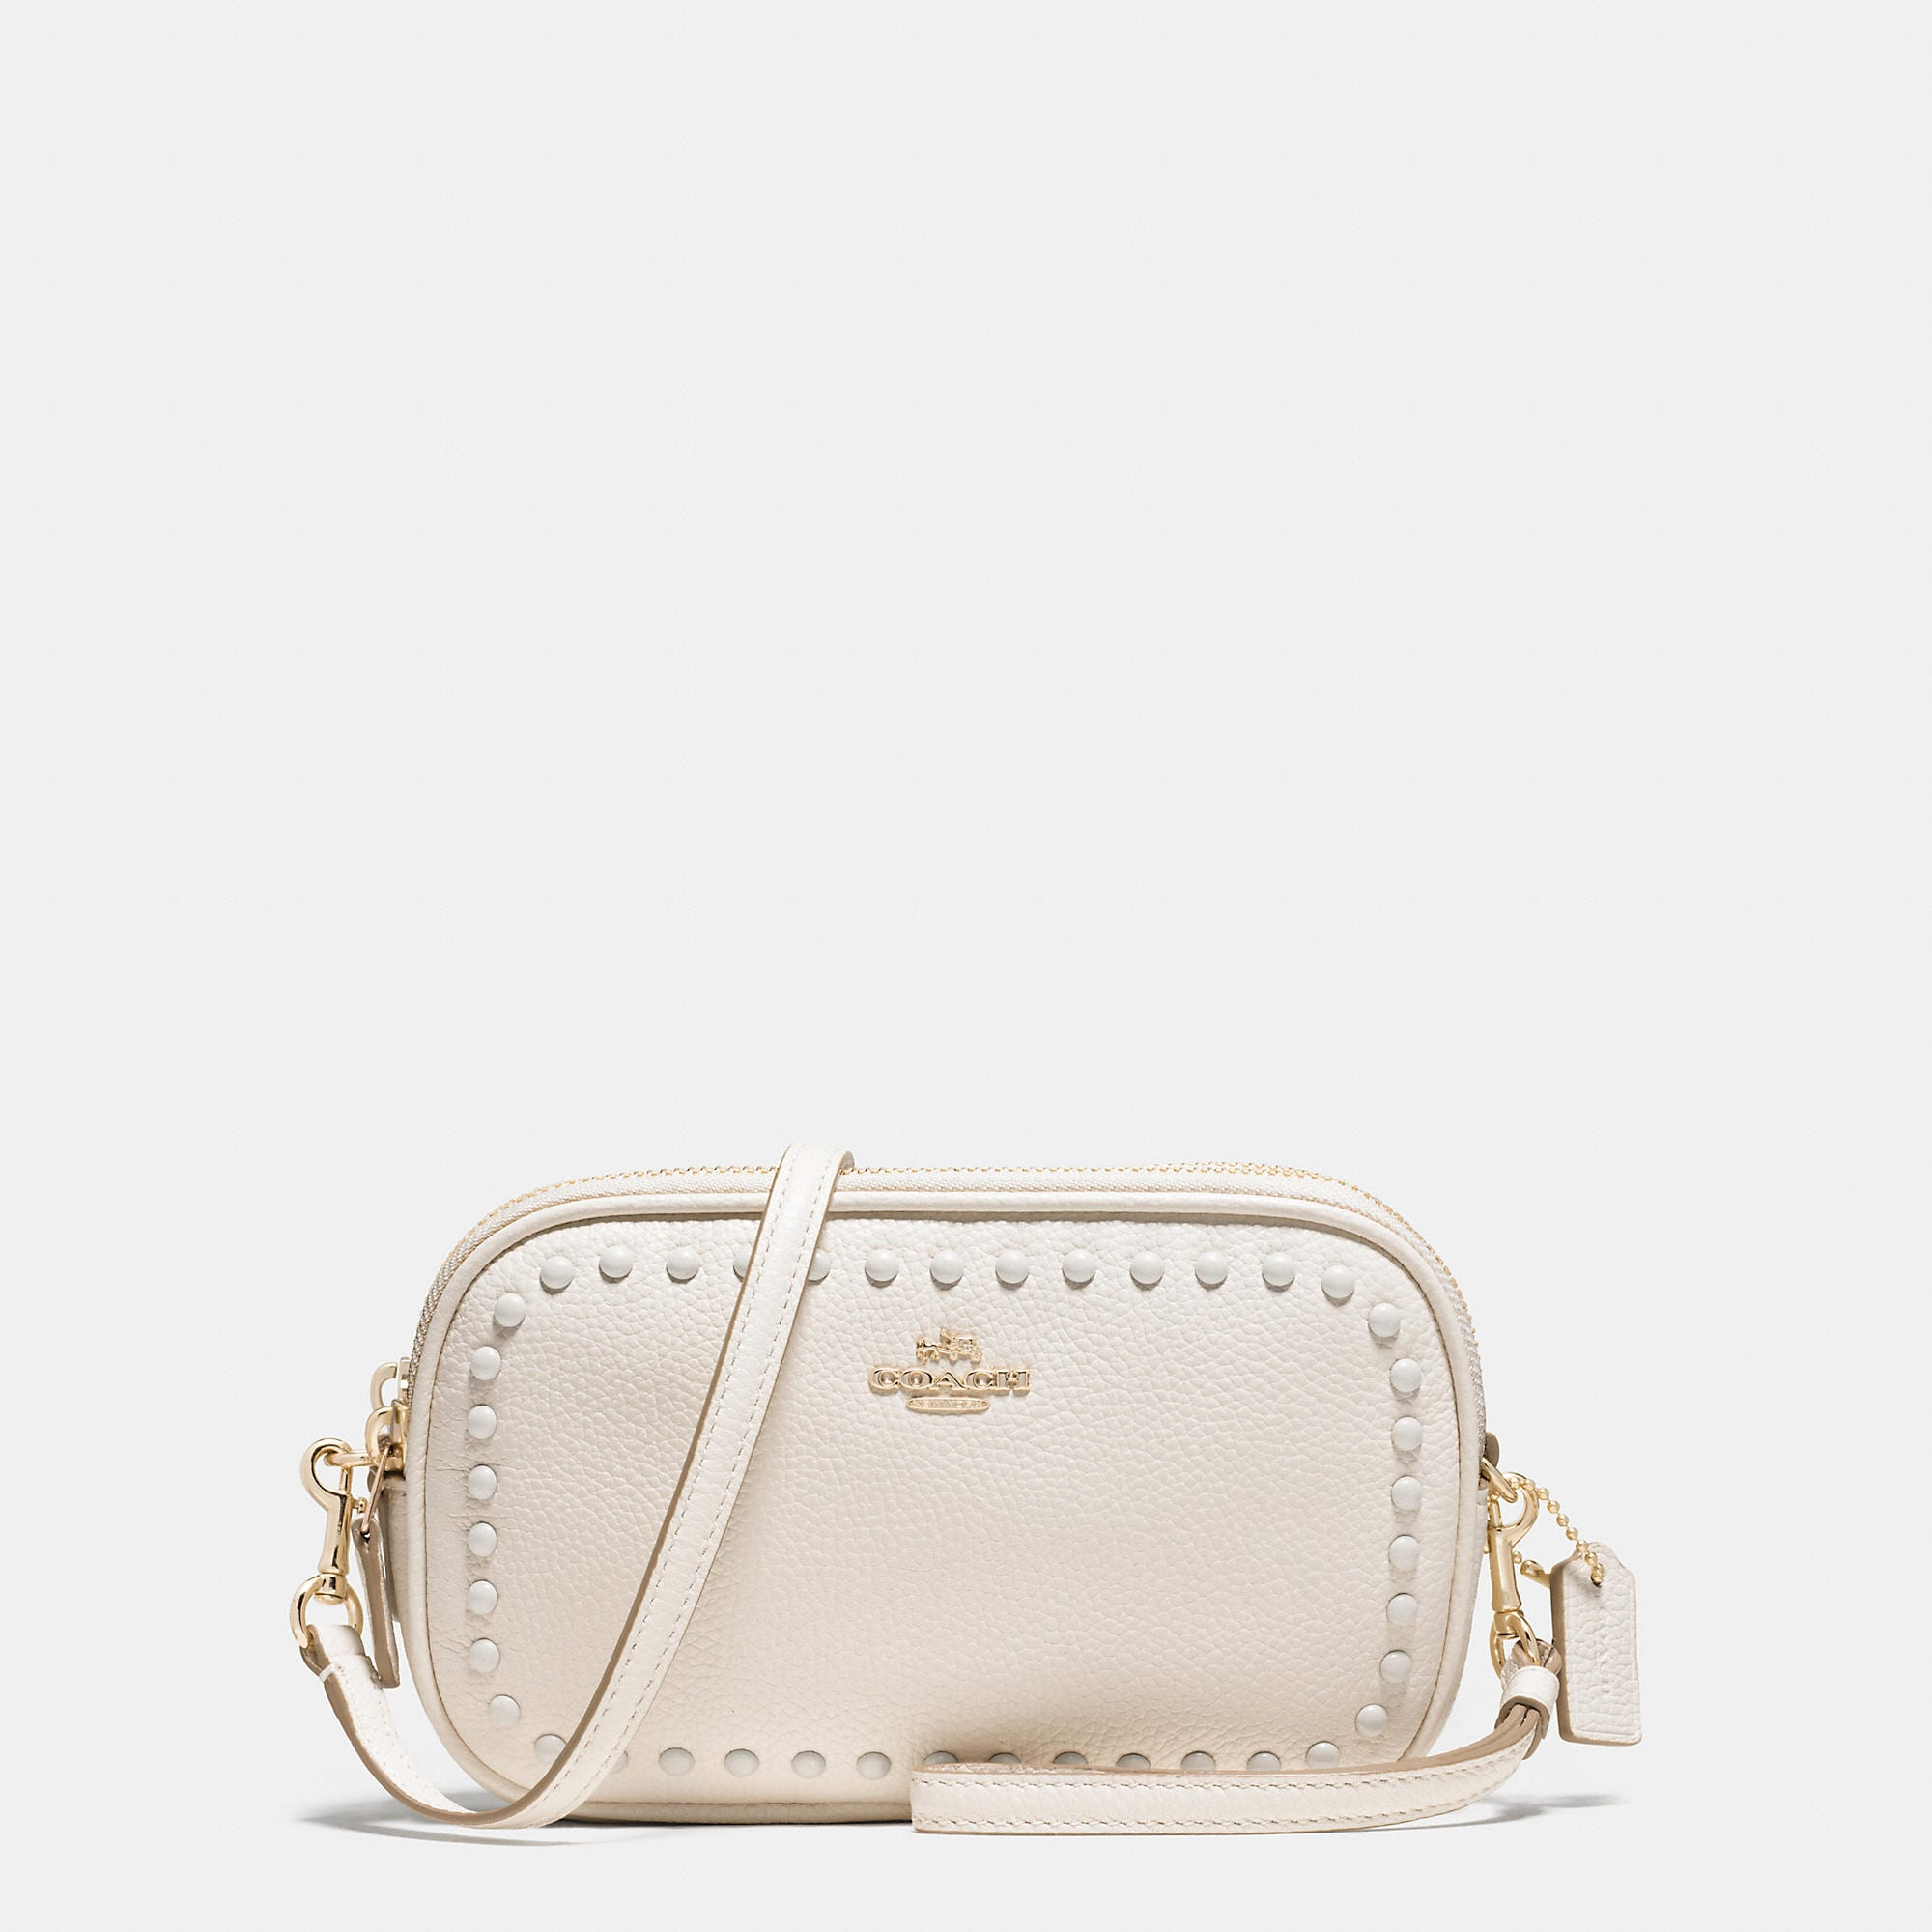 Coach Lacquer Rivets Crossbody Clutch In Pebble Leather